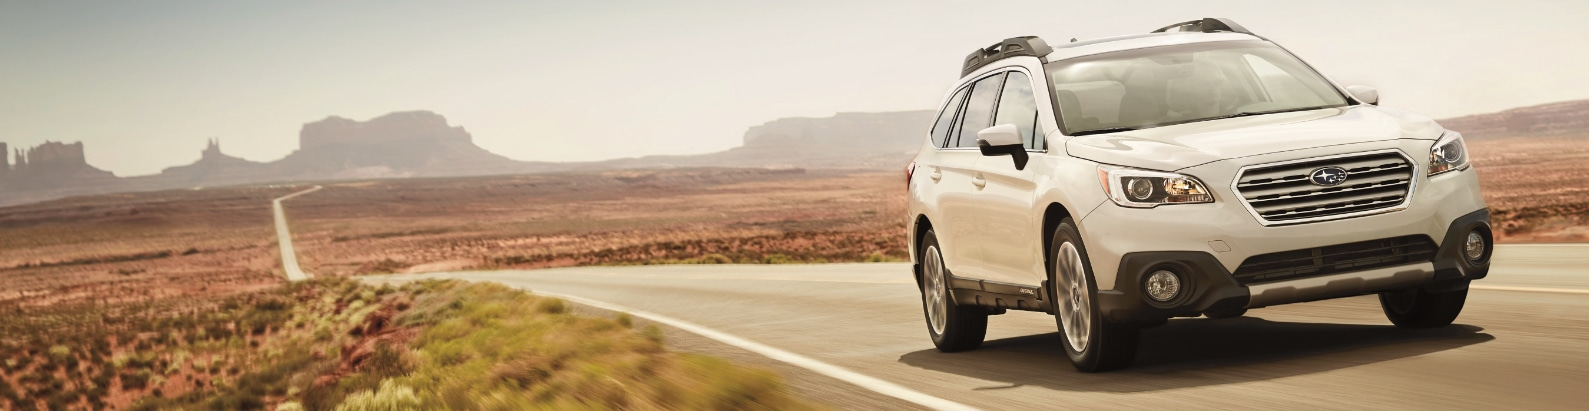 Subaru Outback Lease Deals in ABQ